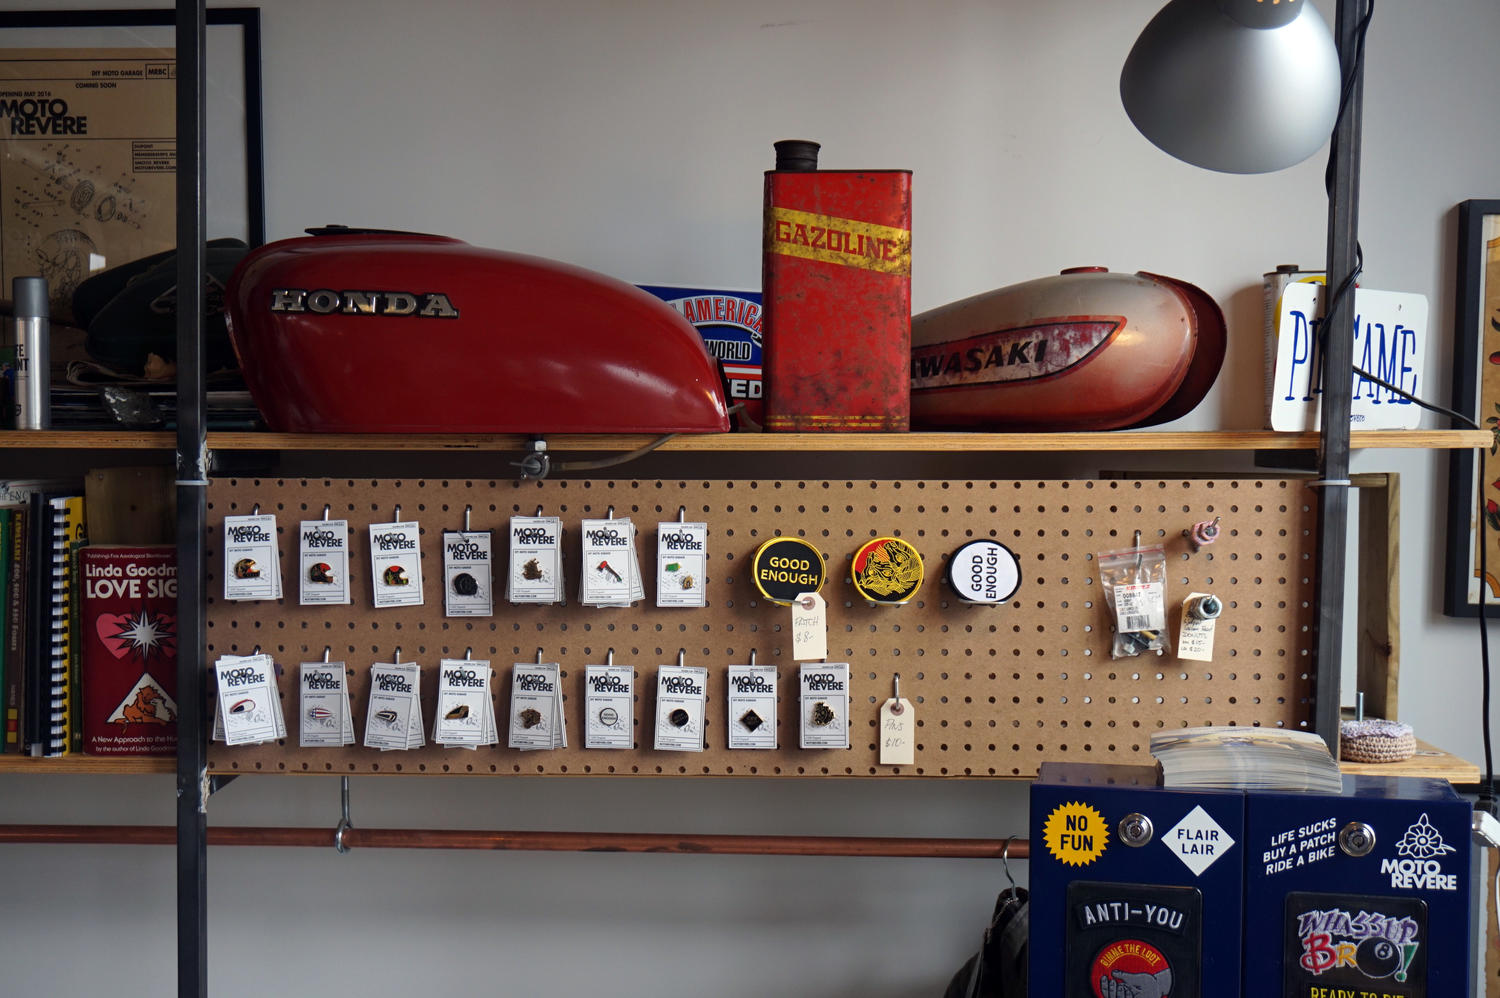 Moto revere diy motorcycle garage in toronto northern ontario travel personally doing the basics like tightening a chain and changing oil replacing spark plugs or taking a wheel off can be done anywhere solutioingenieria Gallery